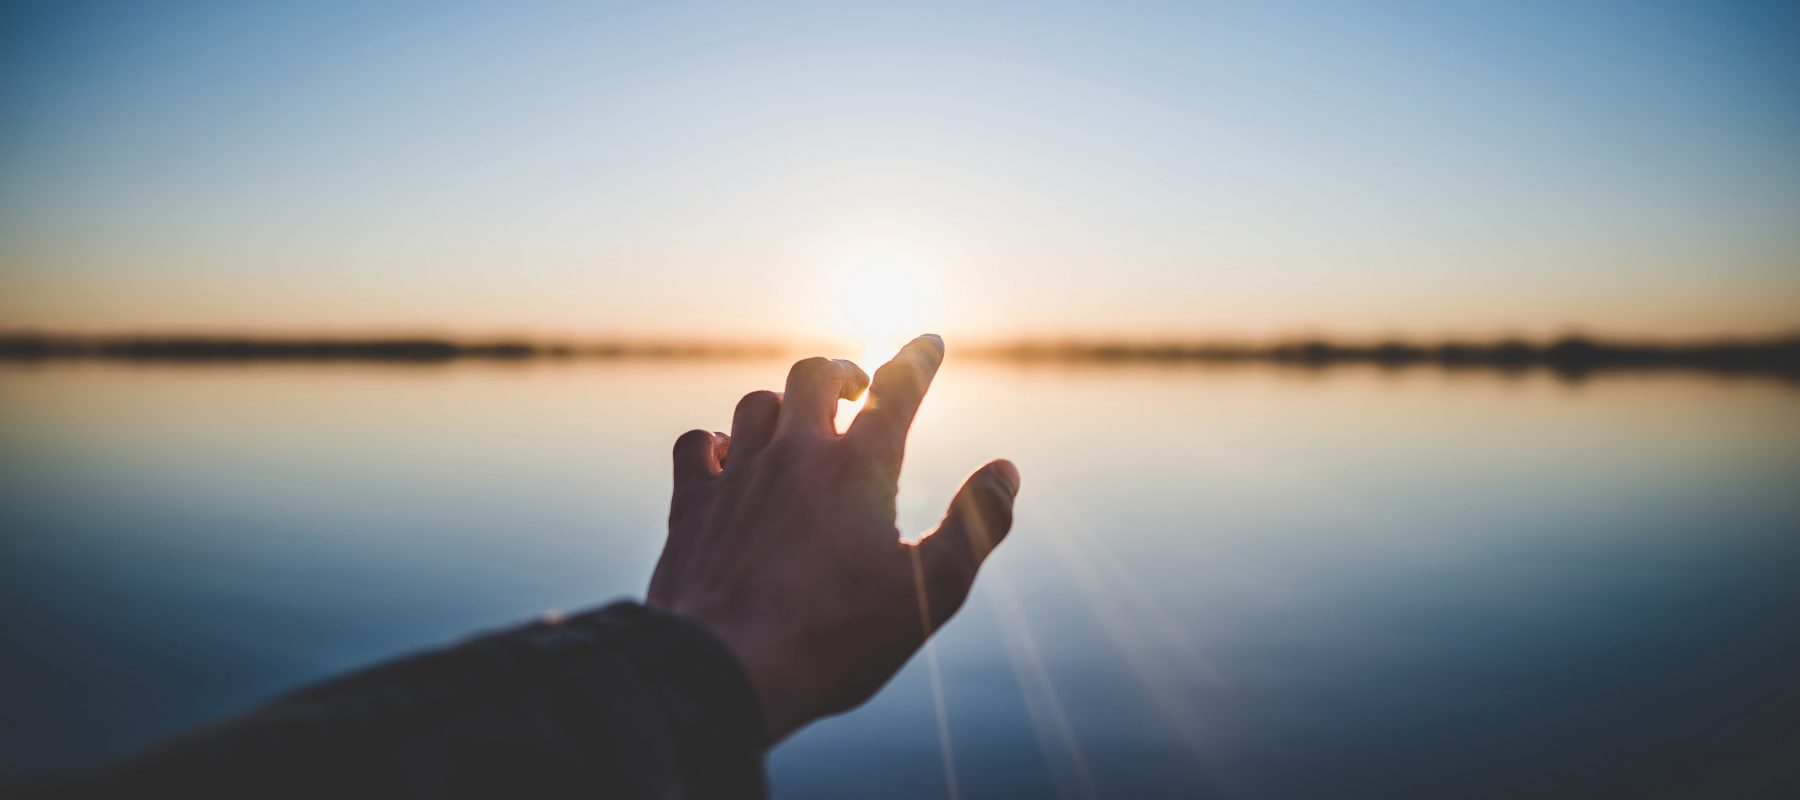 Don't Despair, A New Day is Coming! I was asked to share my thoughts on the lessons we have learned about this tumultuous year. Given the fact that this year has left many angry, exhausted, and depressed, how should Christians, especially Black Christians, prepare spiritually for the new year?